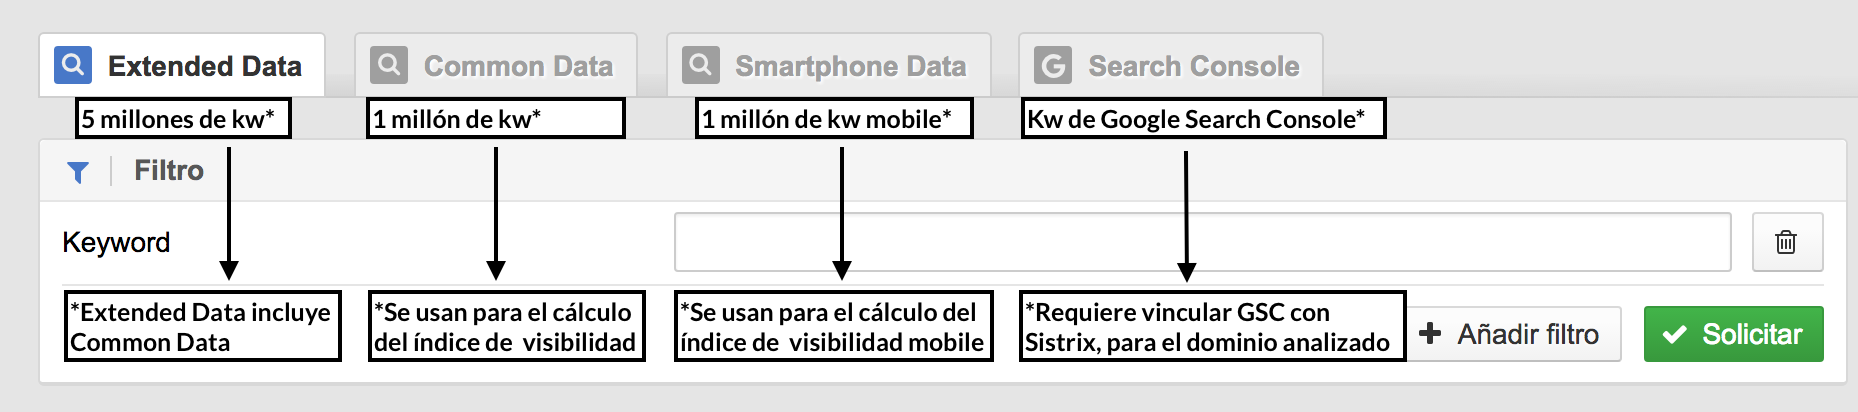 Bases de datos keywords Sistrix